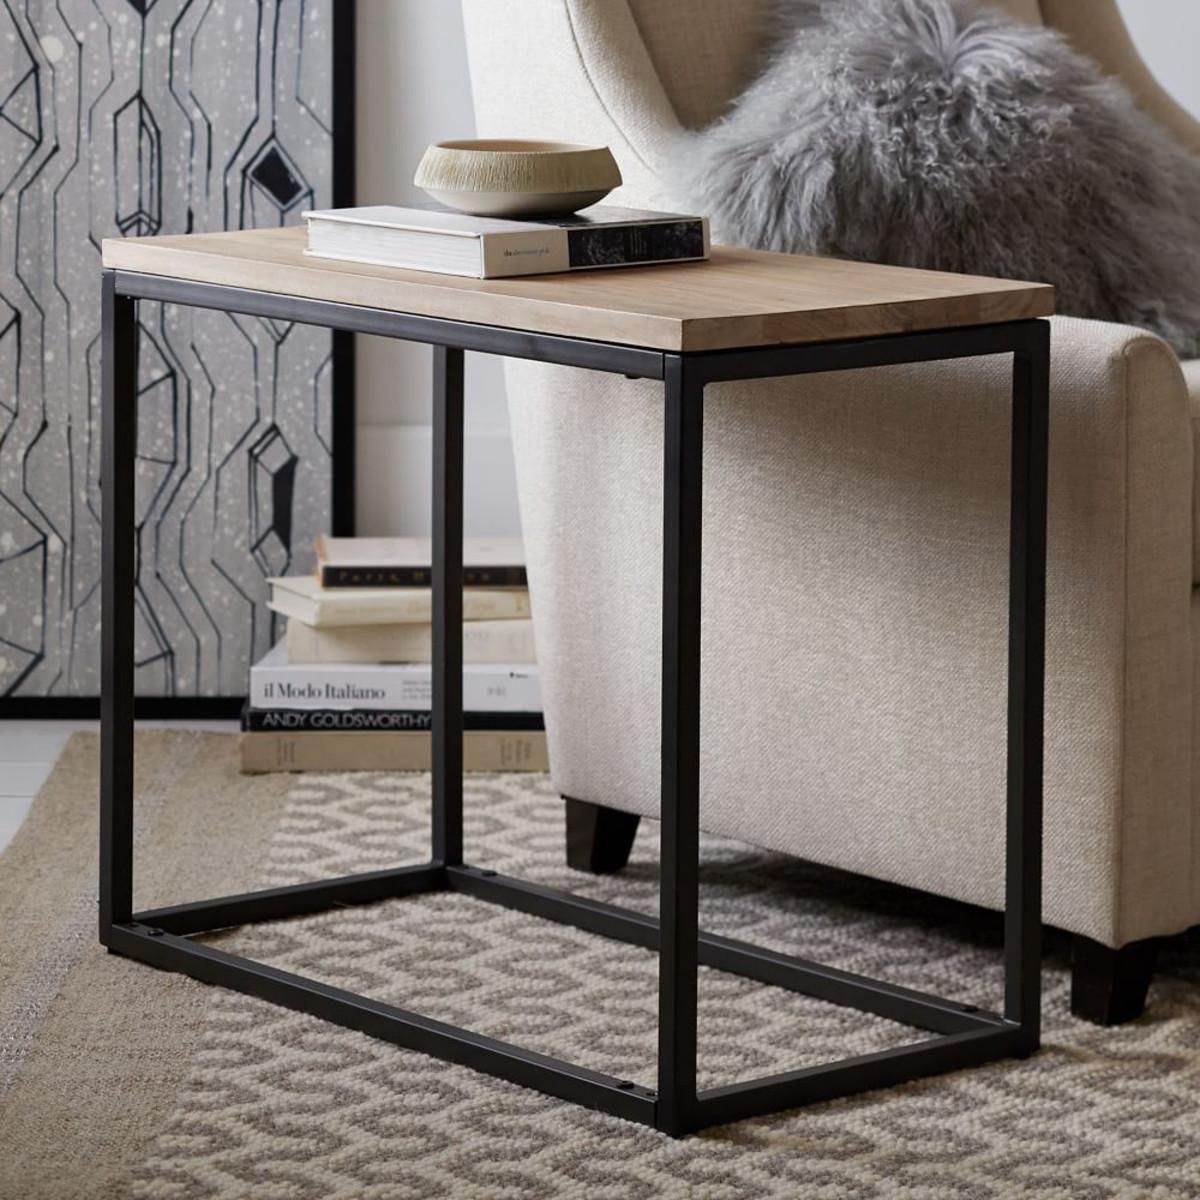 small side table ideas decorate your modern living room midcityeast fantastic design the black iron legs with brown wooden tops narrow grey rugs tables for white round coffee very